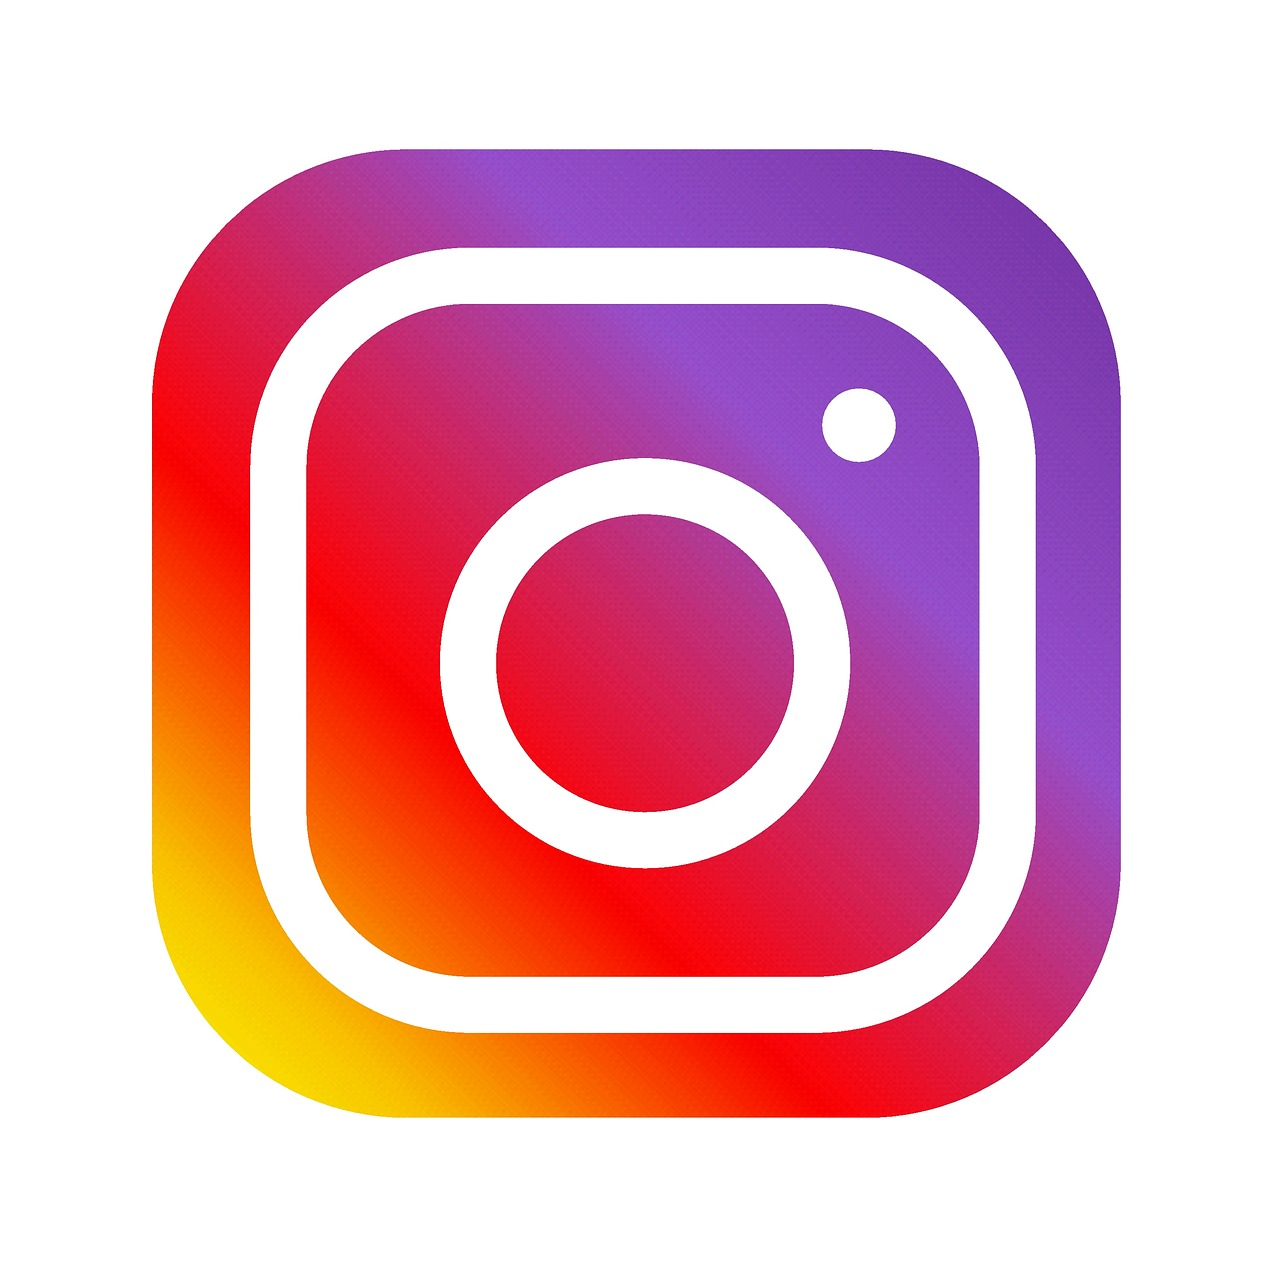 Instagram rimuoverà followers, like e commenti falsi